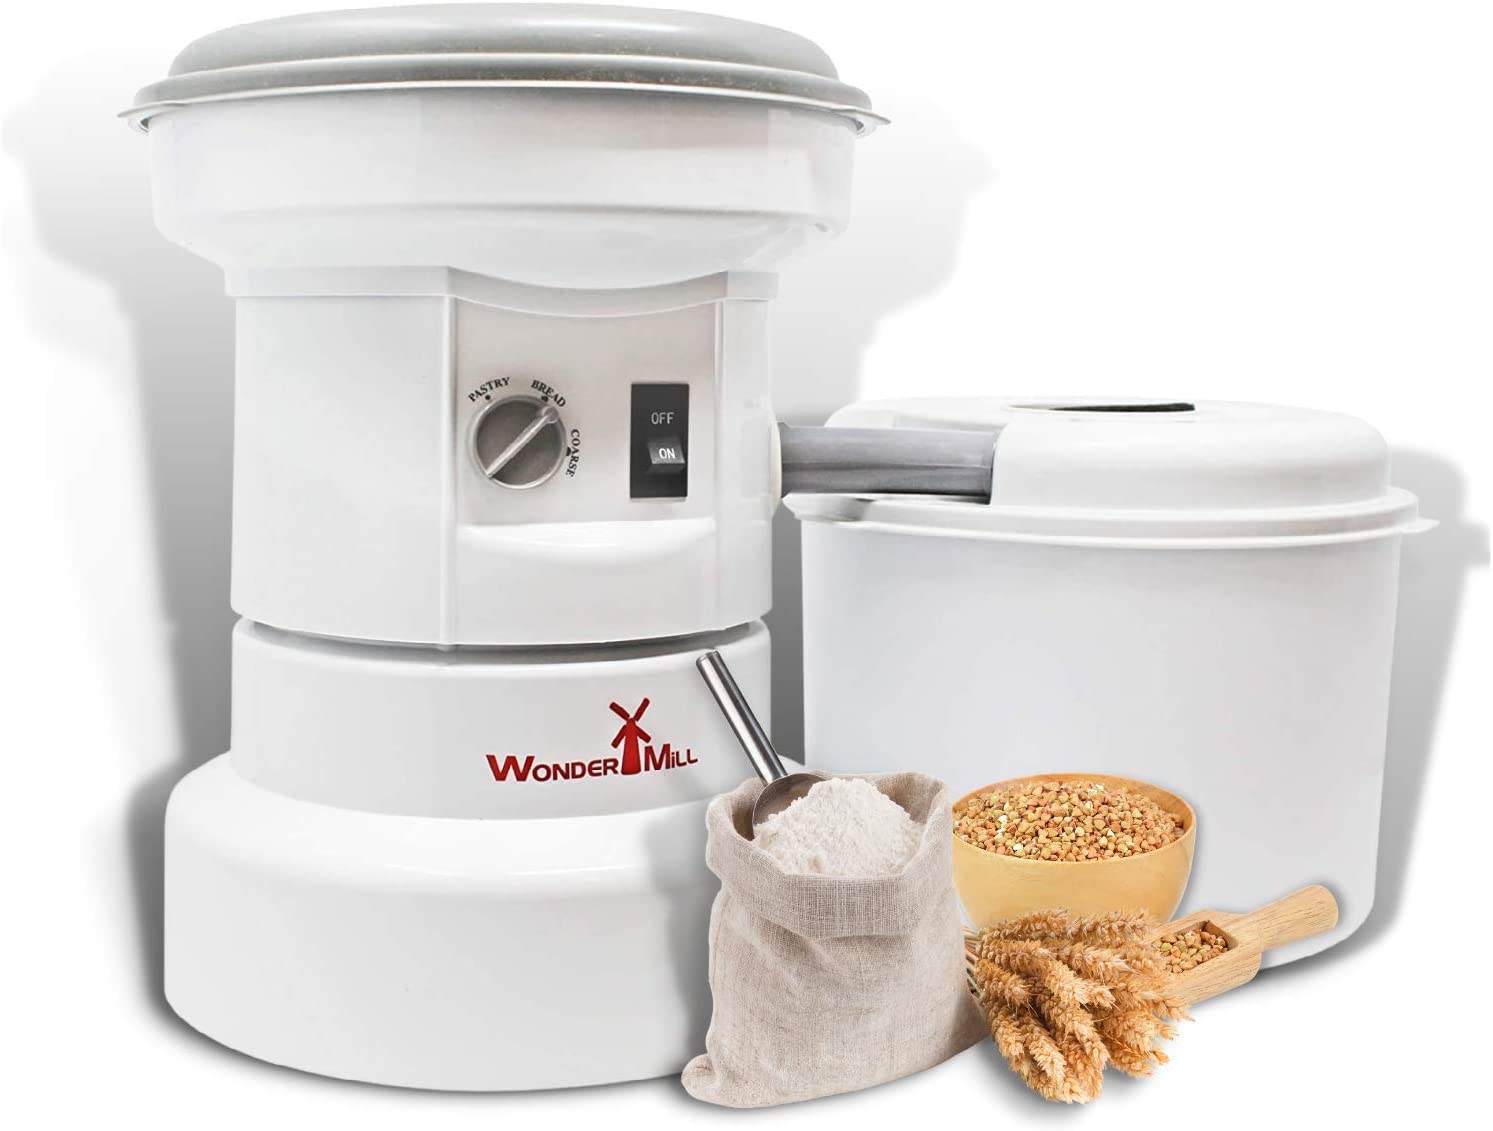 Powerful Electric Grain Mill Grinder Home Professional U for and Ranking New item TOP16